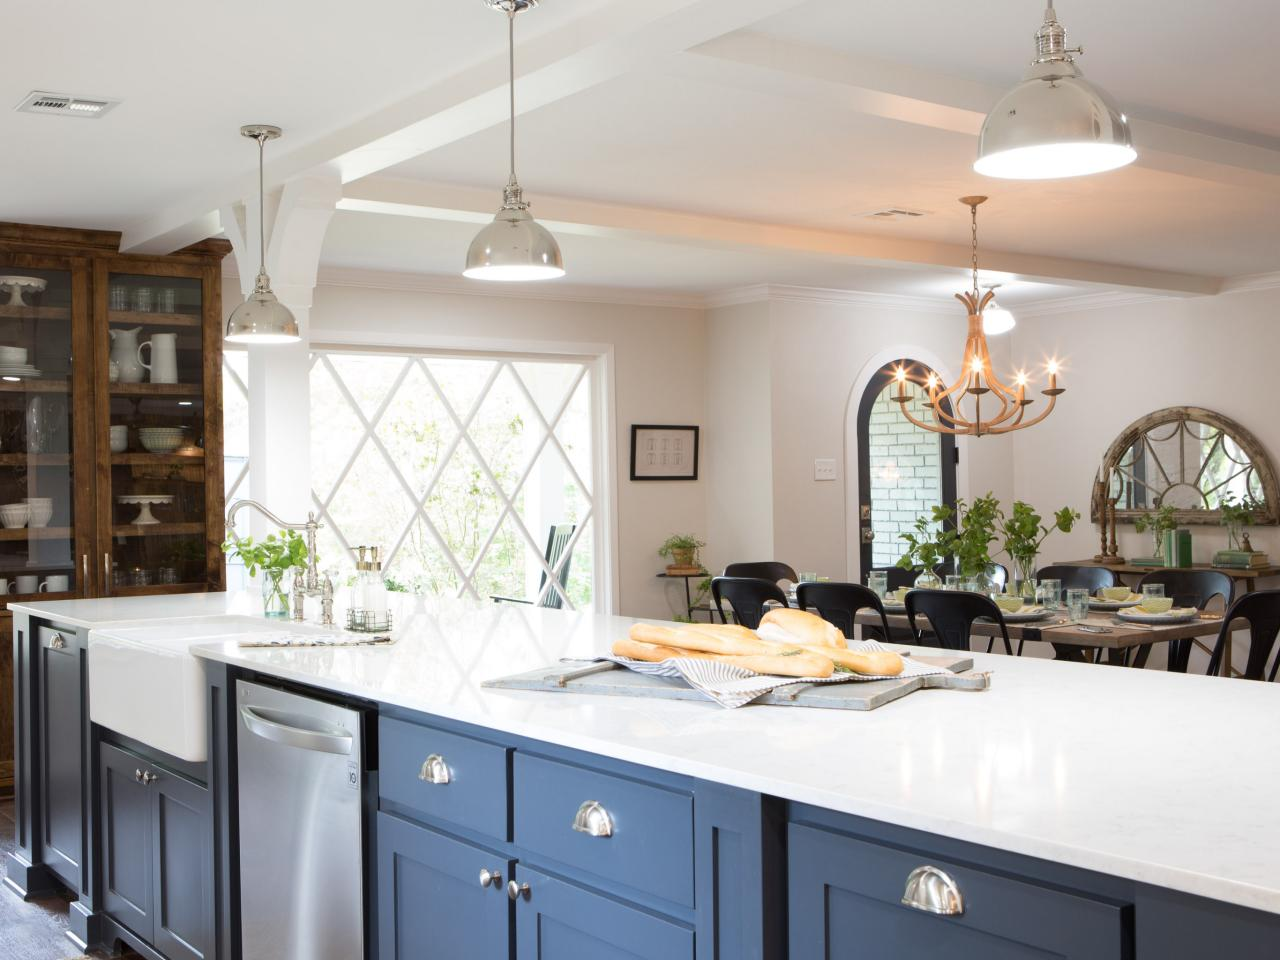 A kitchen island in a home on HGTV's 'Fixer Upper'